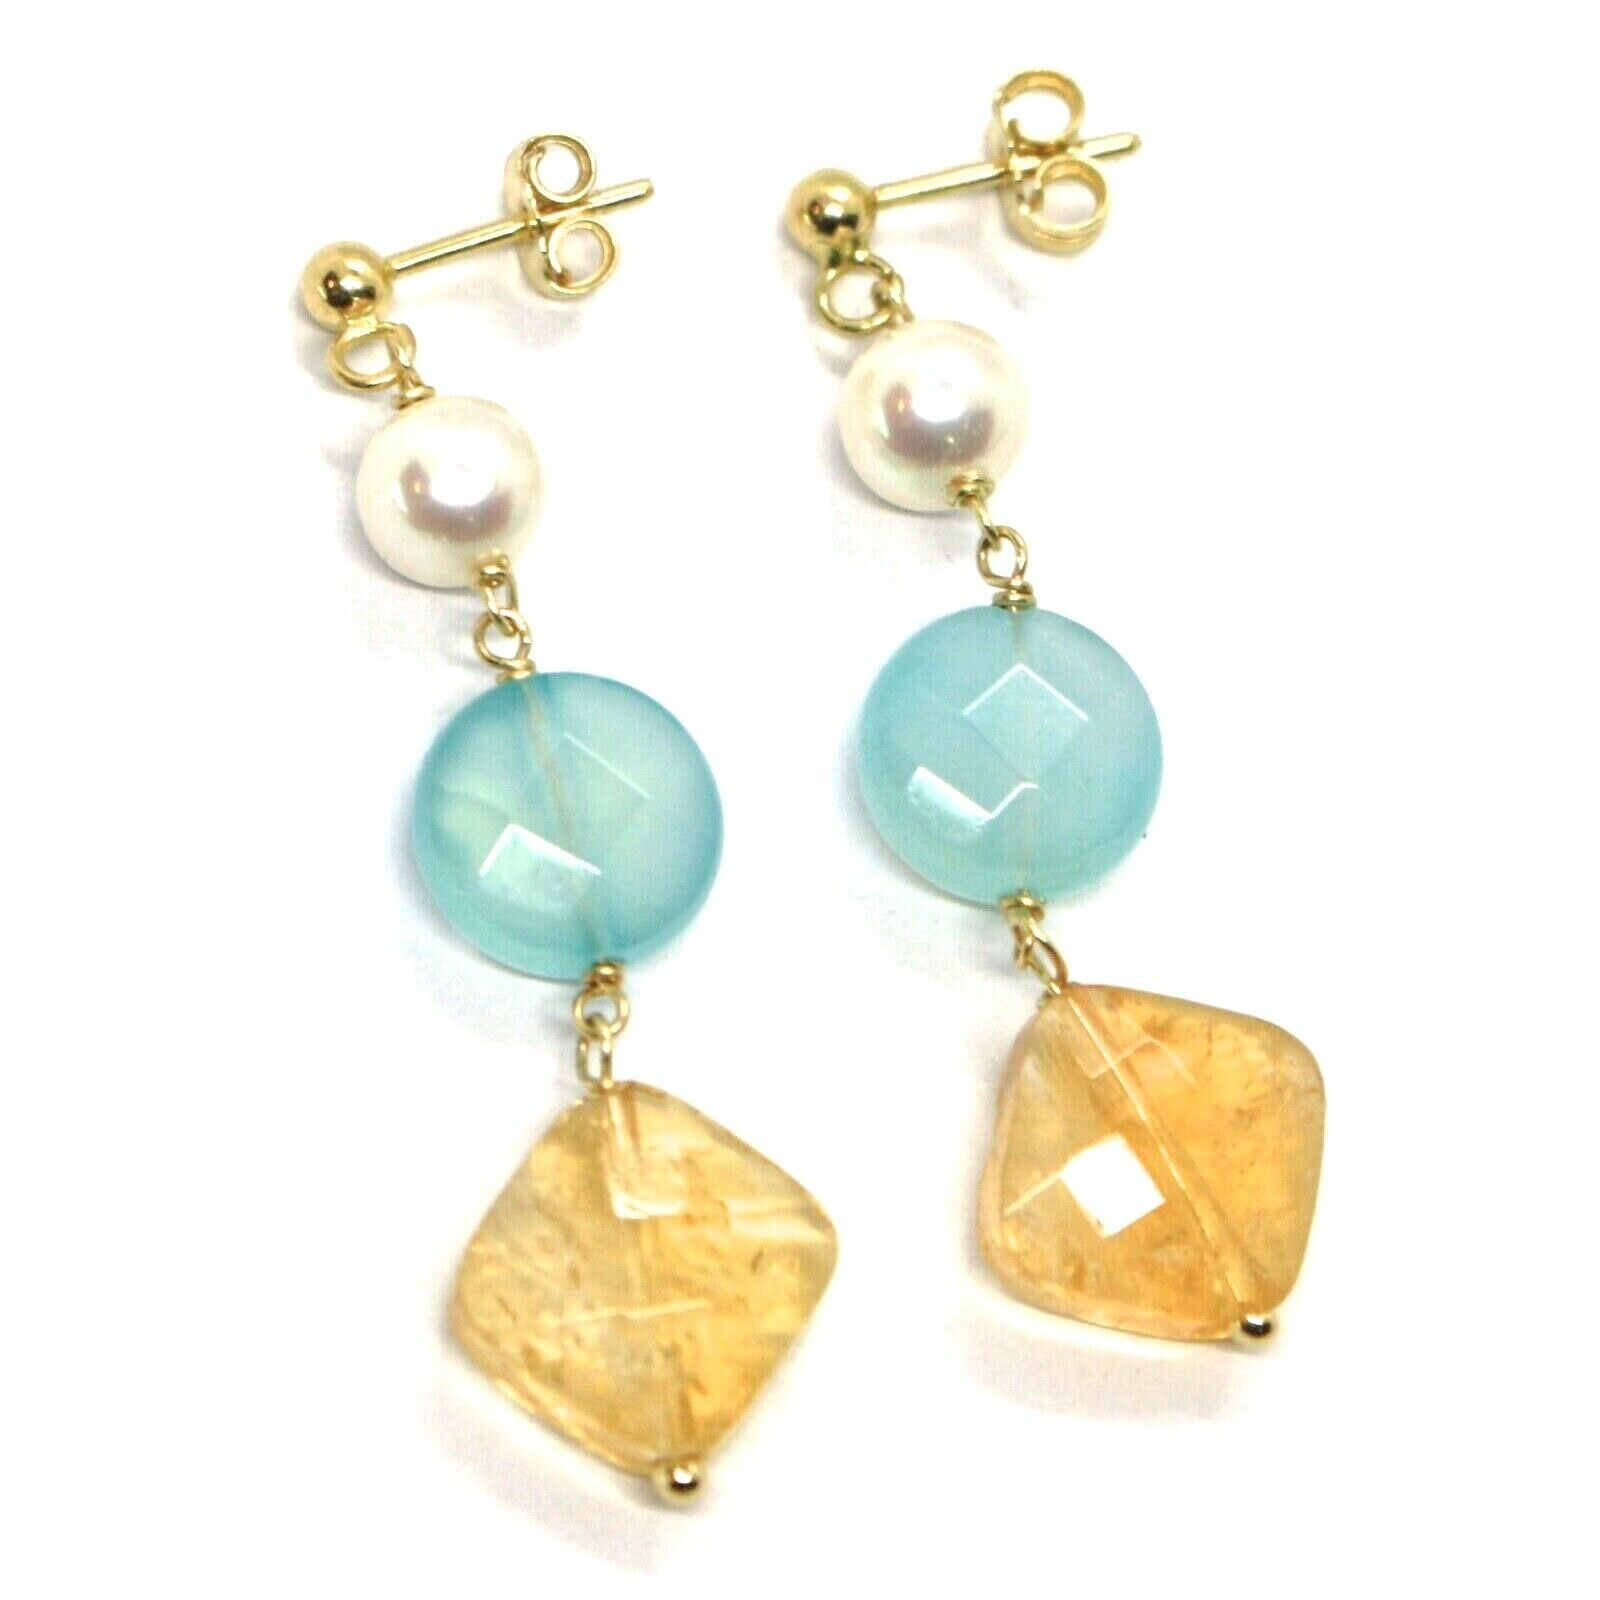 Drop Earrings Yellow Gold, 18K 750, Pearls, Citrine Square, Jade Blue Disco